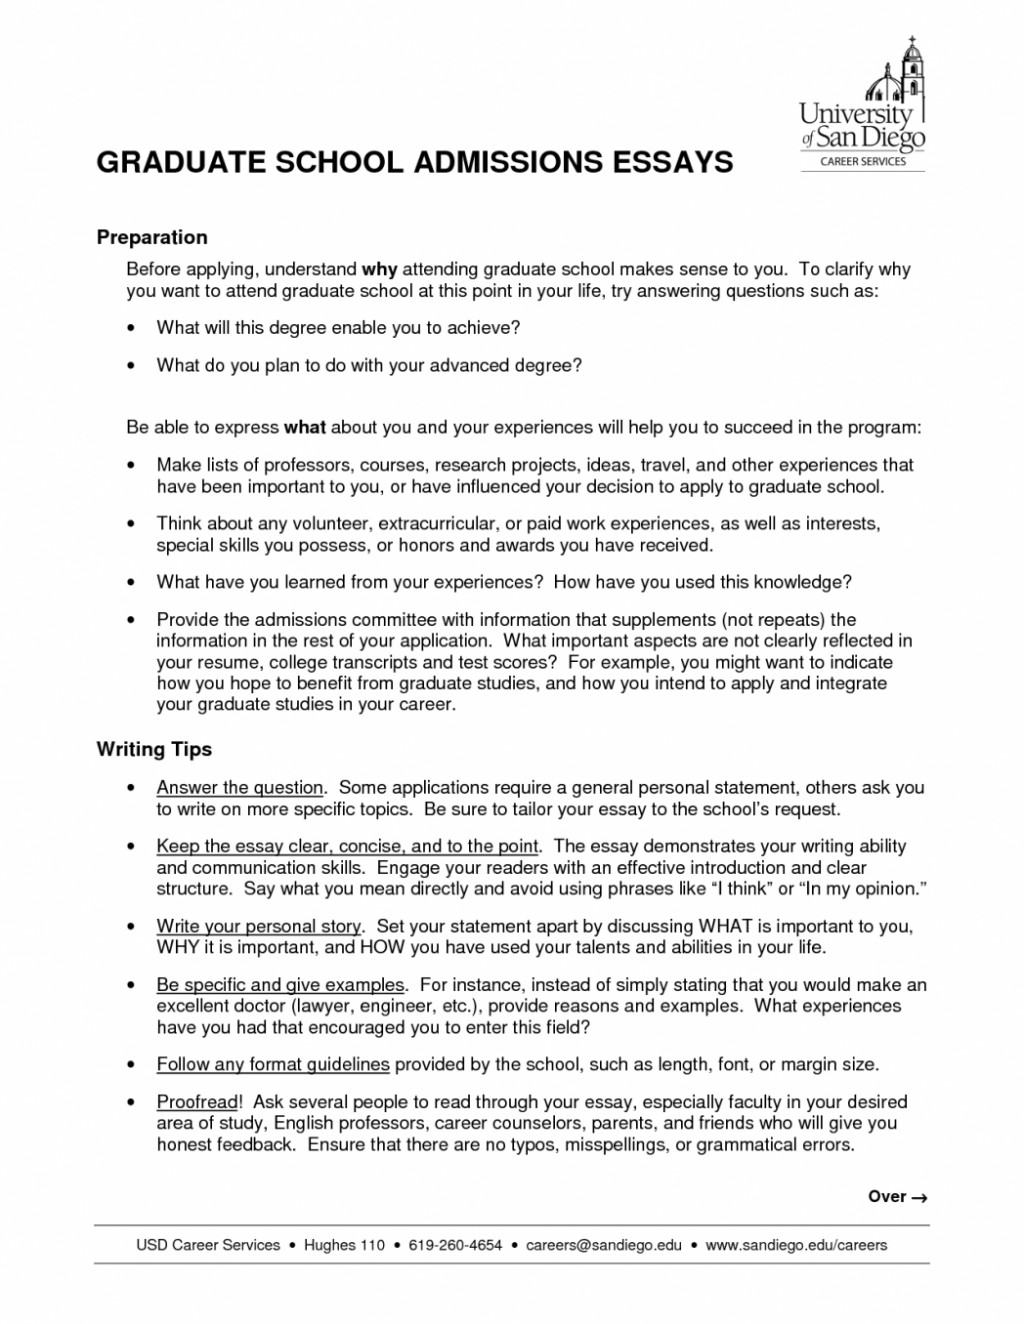 017 Essay Example Uw Application Professional Letter Writing For Hire Masters Sample Questions Madison La Crosse Question Milwaukee Incredible Examples Transfer Large